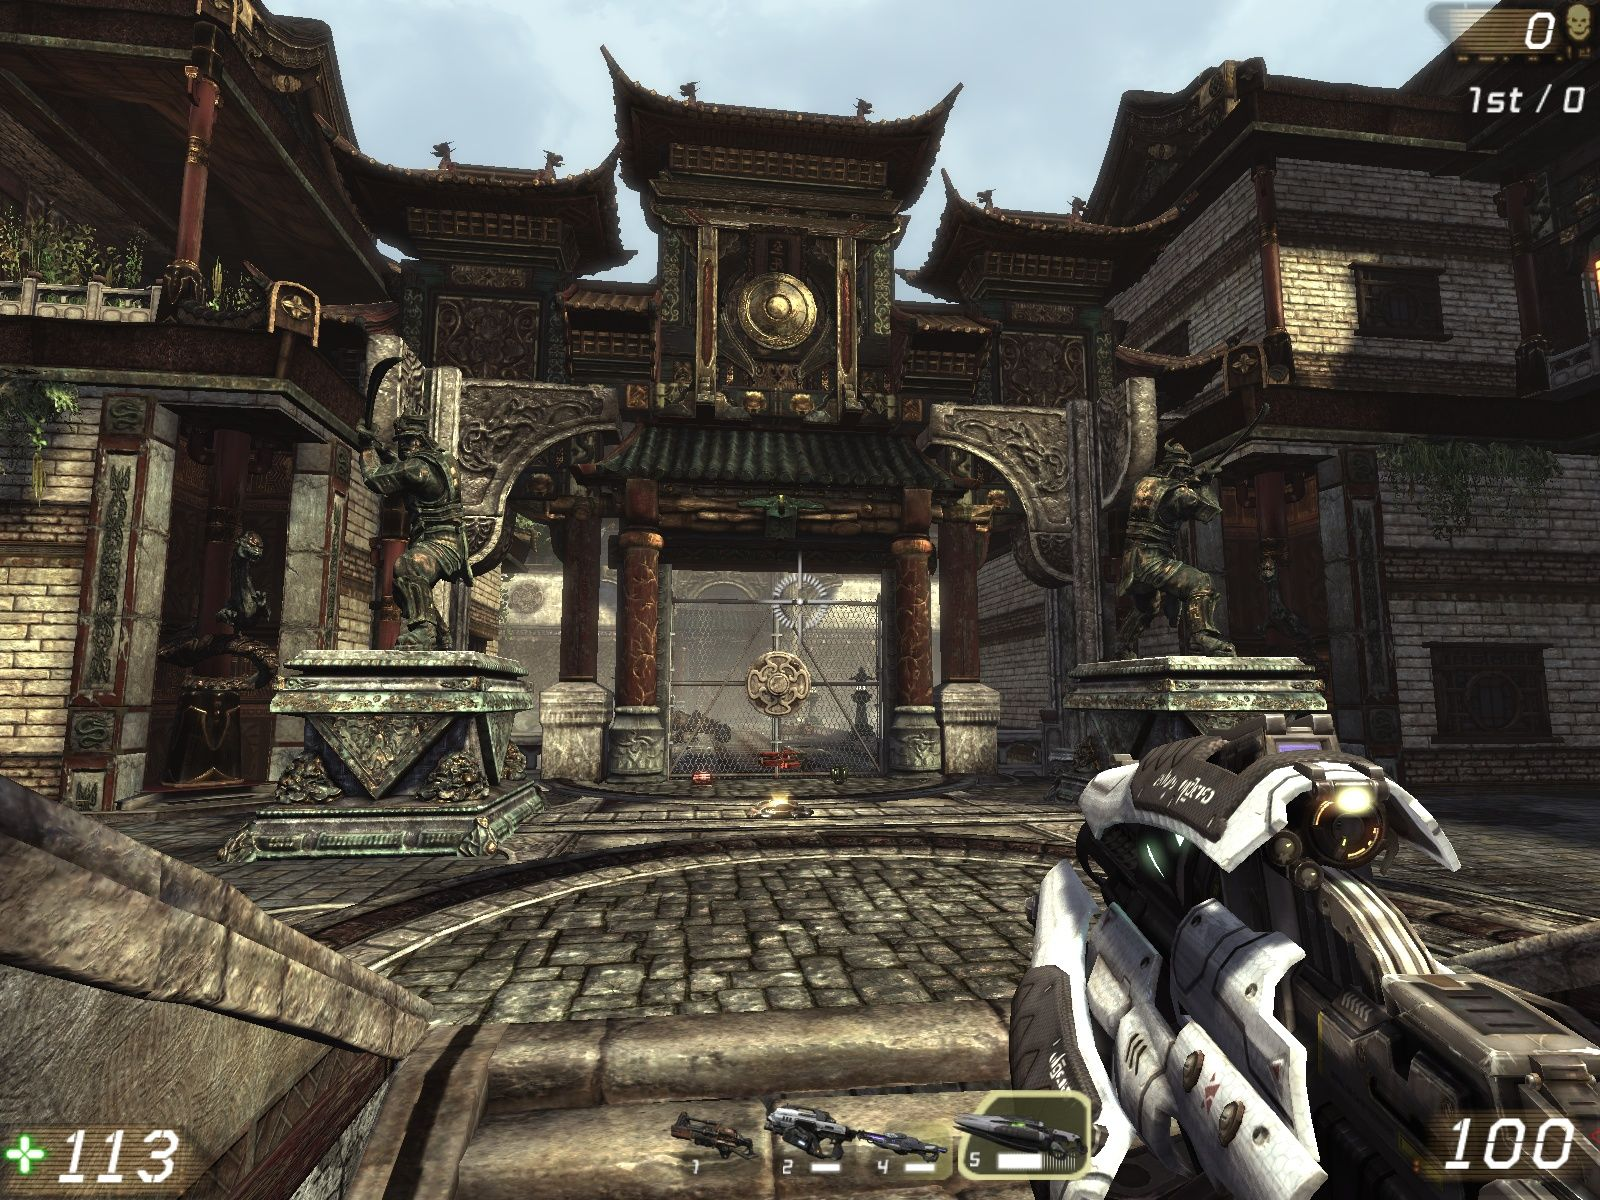 Unreal Tournament III Windows The graphics are quite good.